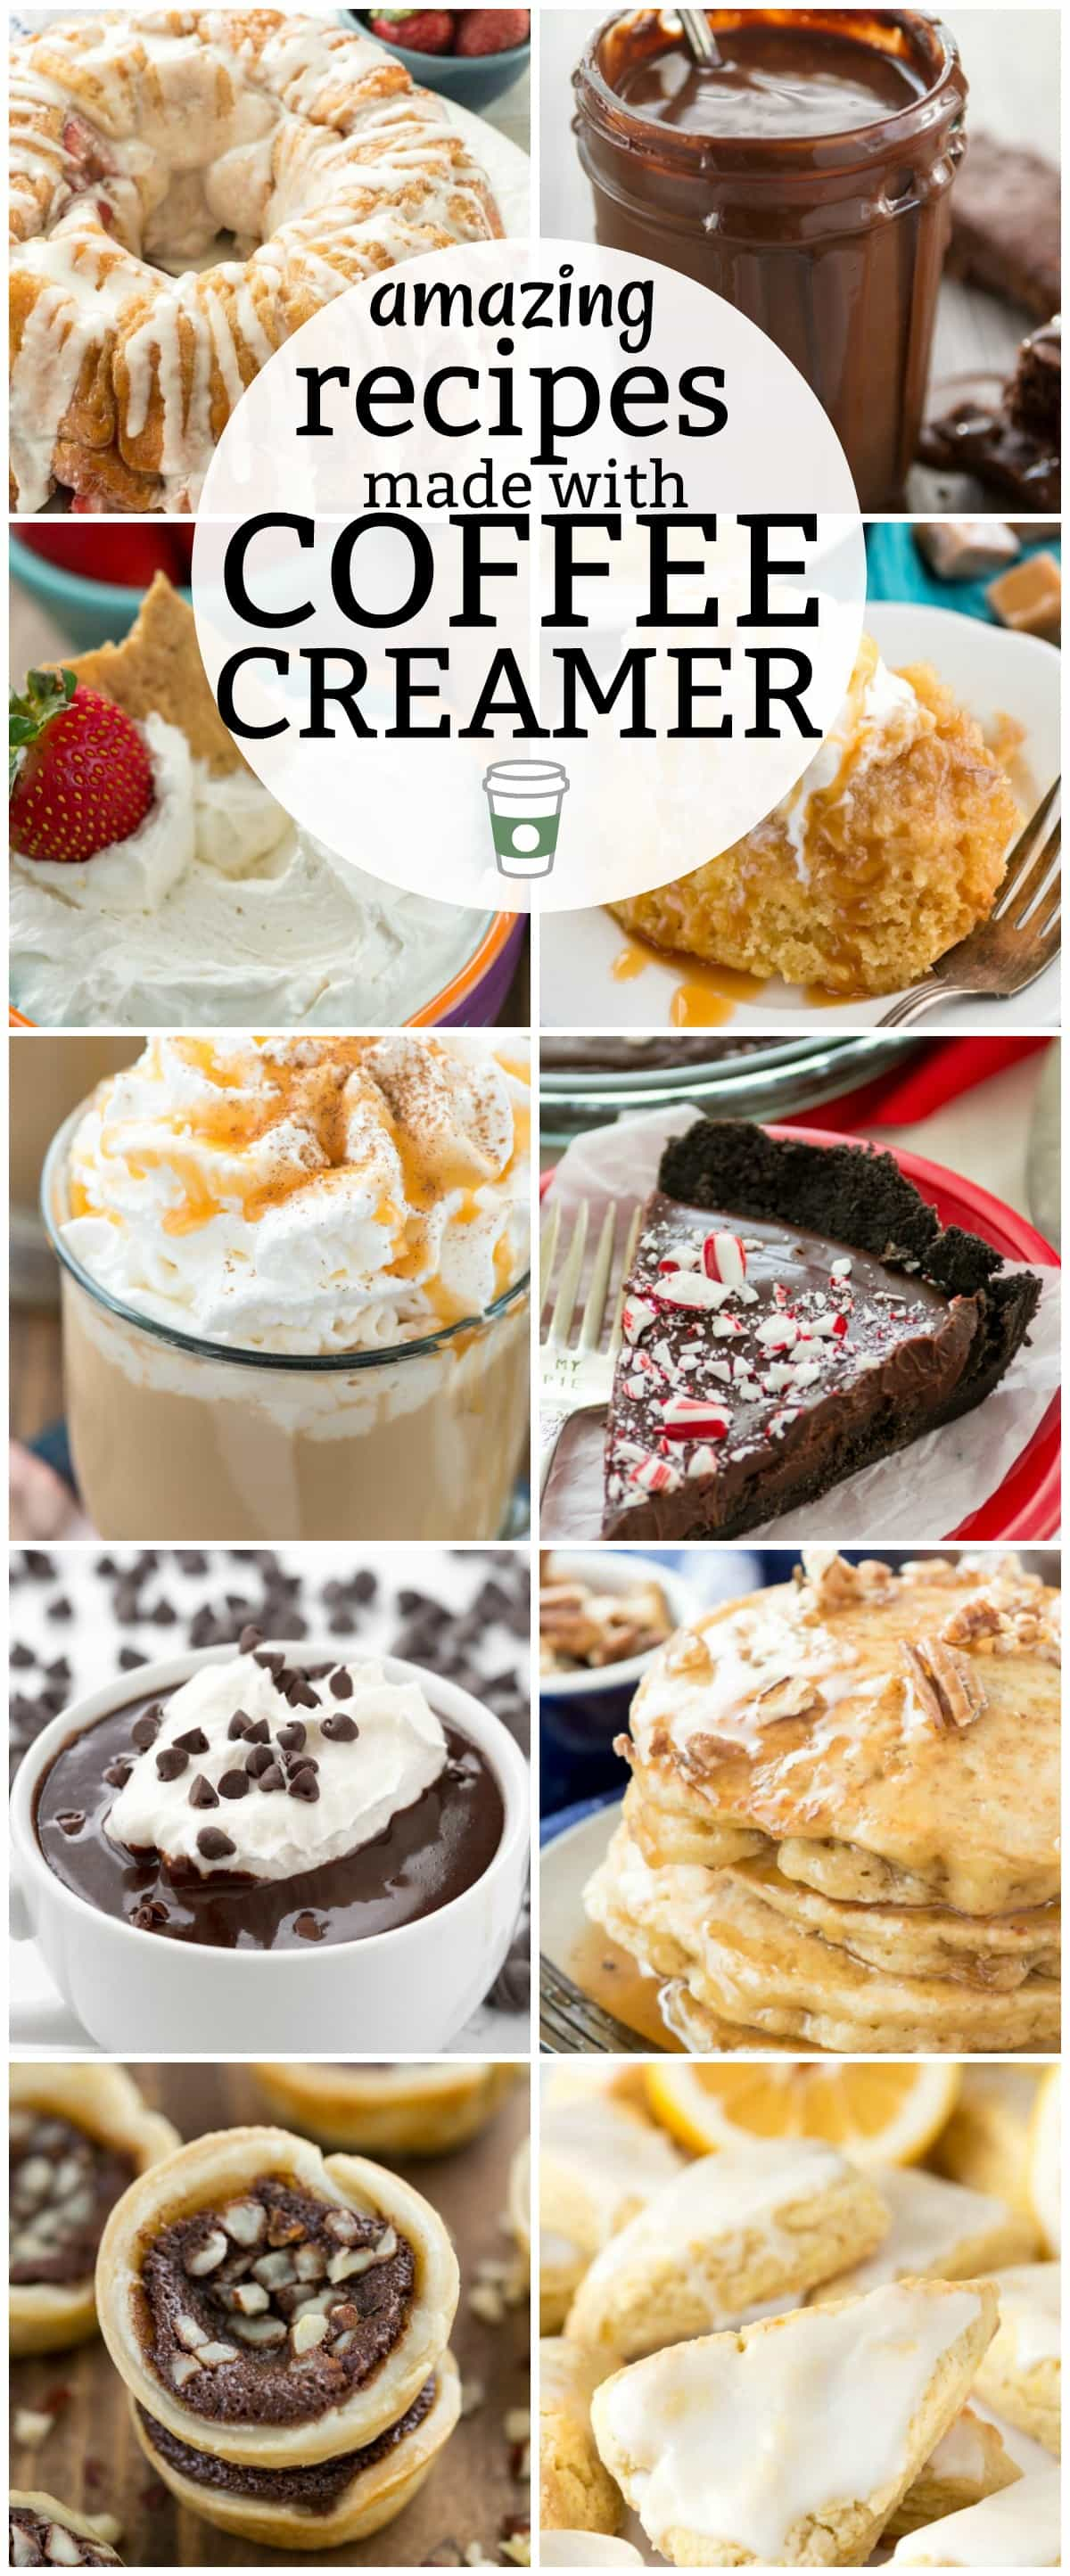 There are SO MANY recipes you can make with coffee creamer! Drinks, pancakes, cakes, pies, scones, dips, the options are endless. This list has over 38 amazing recipes made with Coffee Creamer!